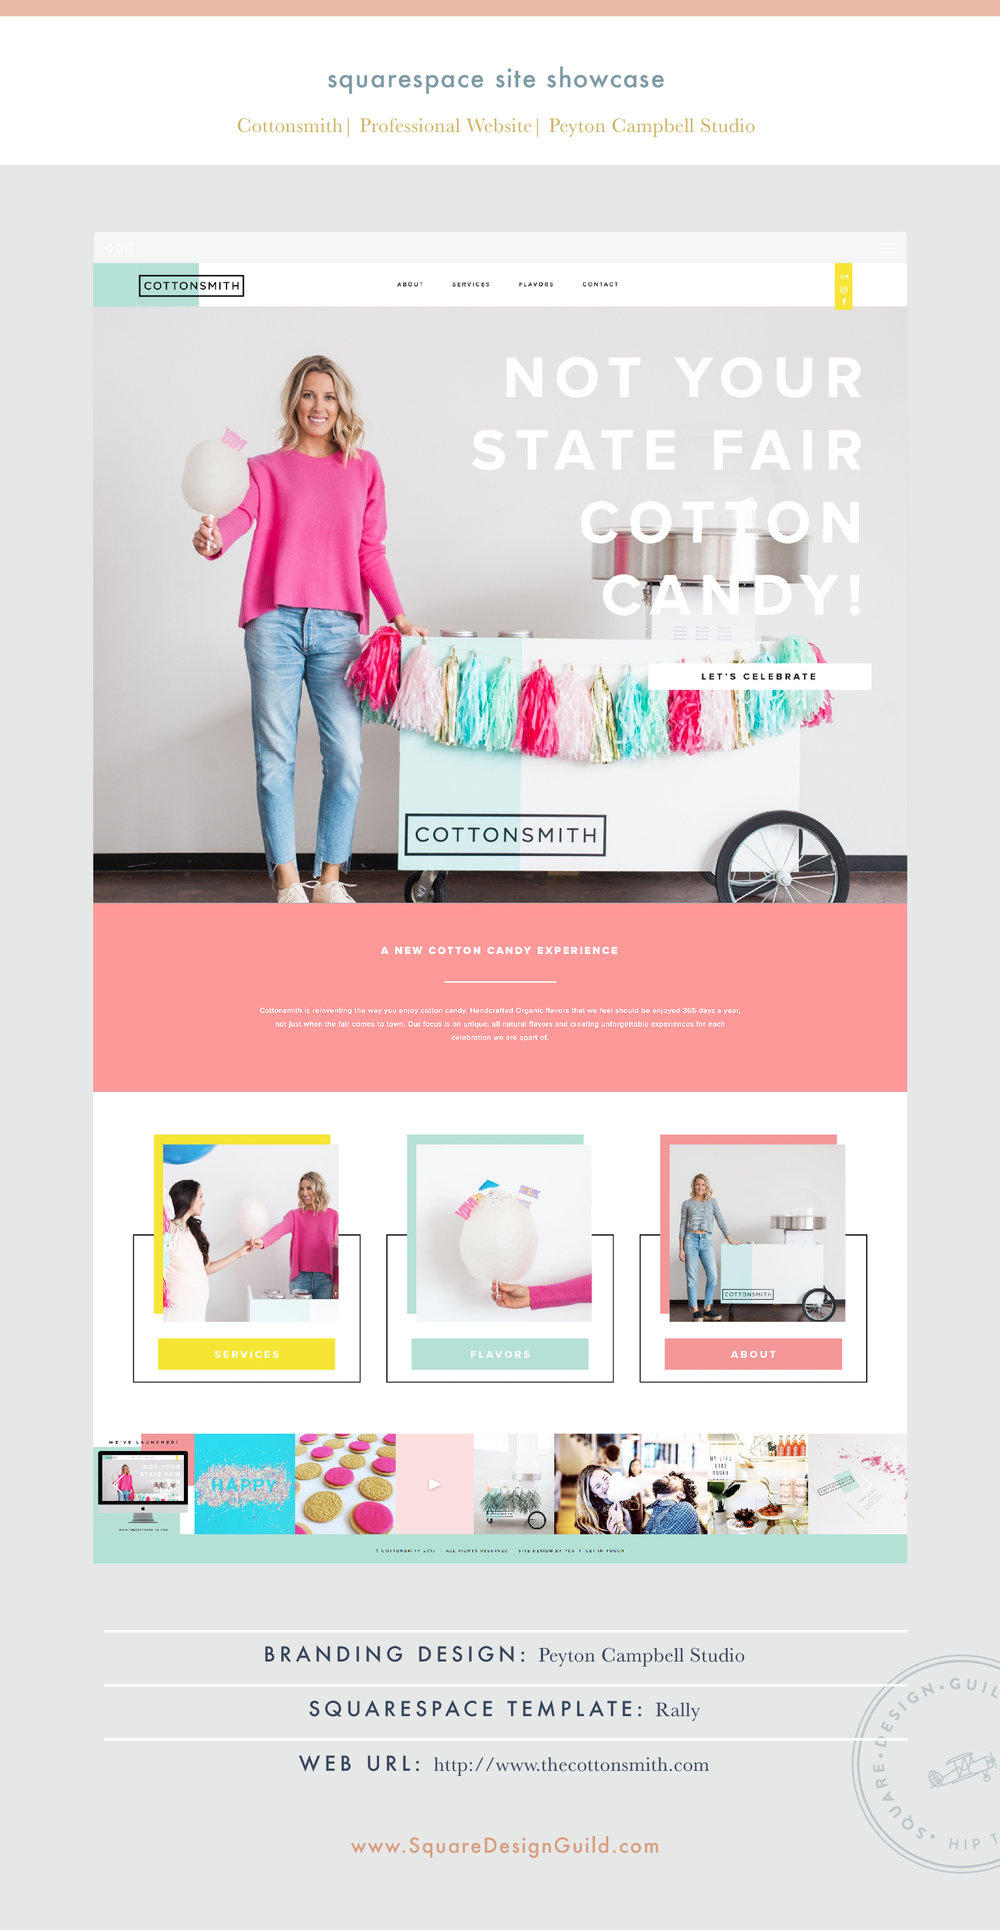 Square Design Guild | Squarespace Site Showcase: Cottonsmith | Professional Website on Rally